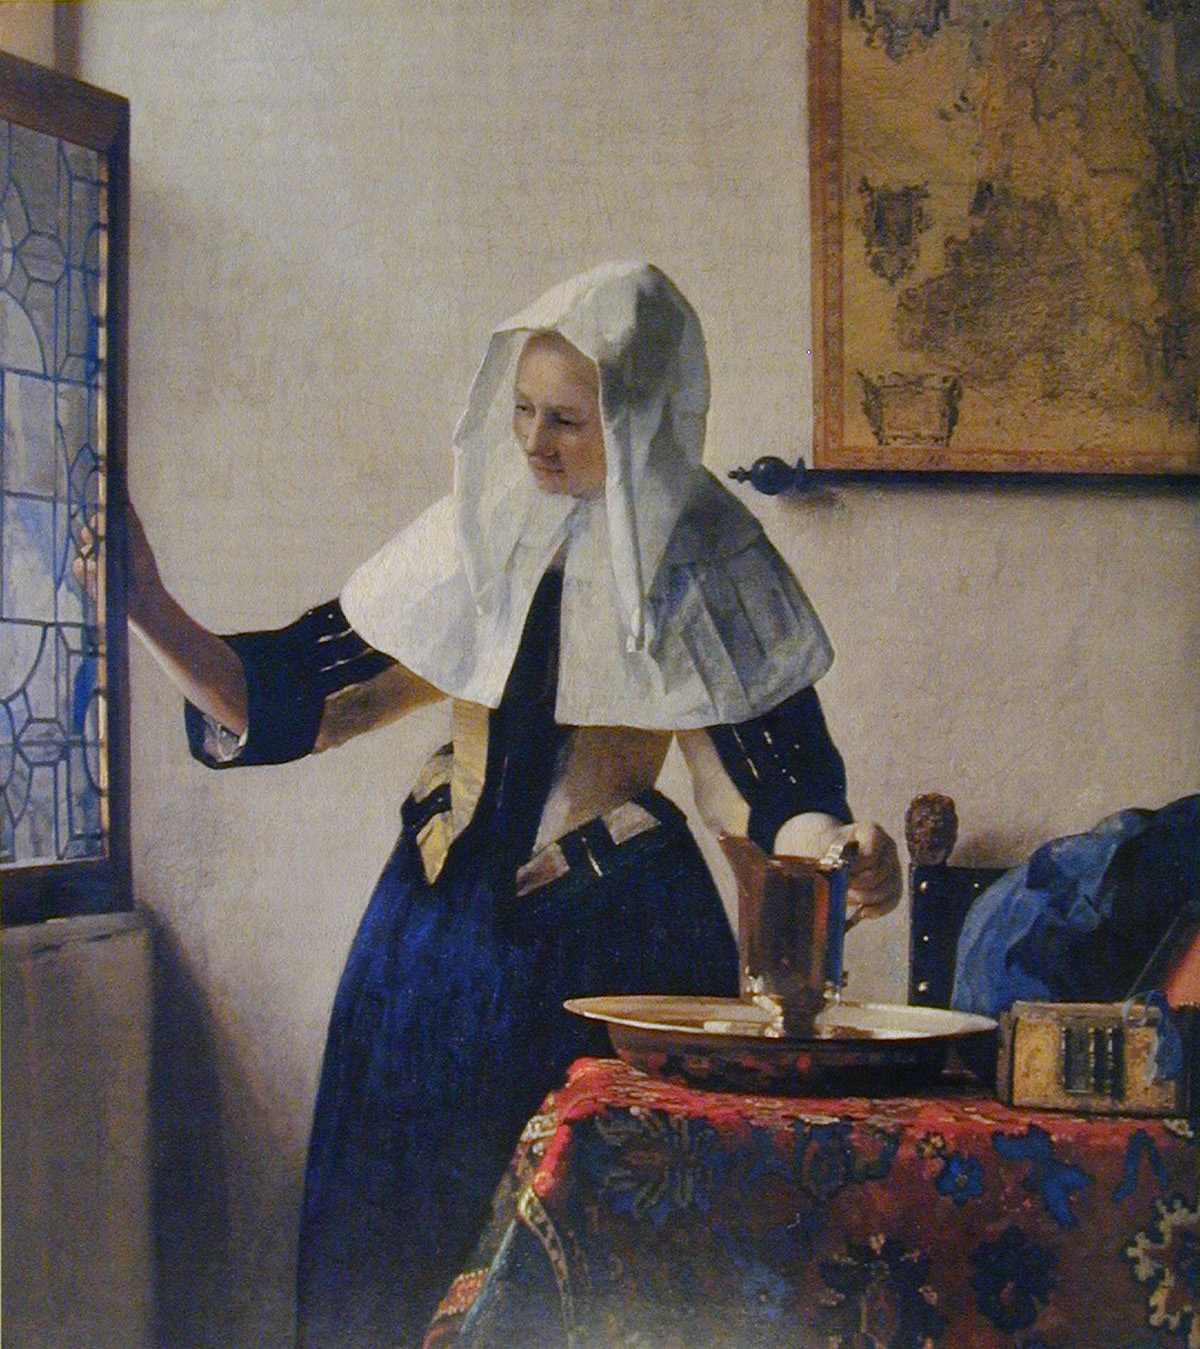 Young Woman with a Water Pitcher (1662) Oil on canvas by Johannes Vermeer The Metropolitan Museum of Art, New York Marquand Collection, Gift of Henry G. Marquand, 1889